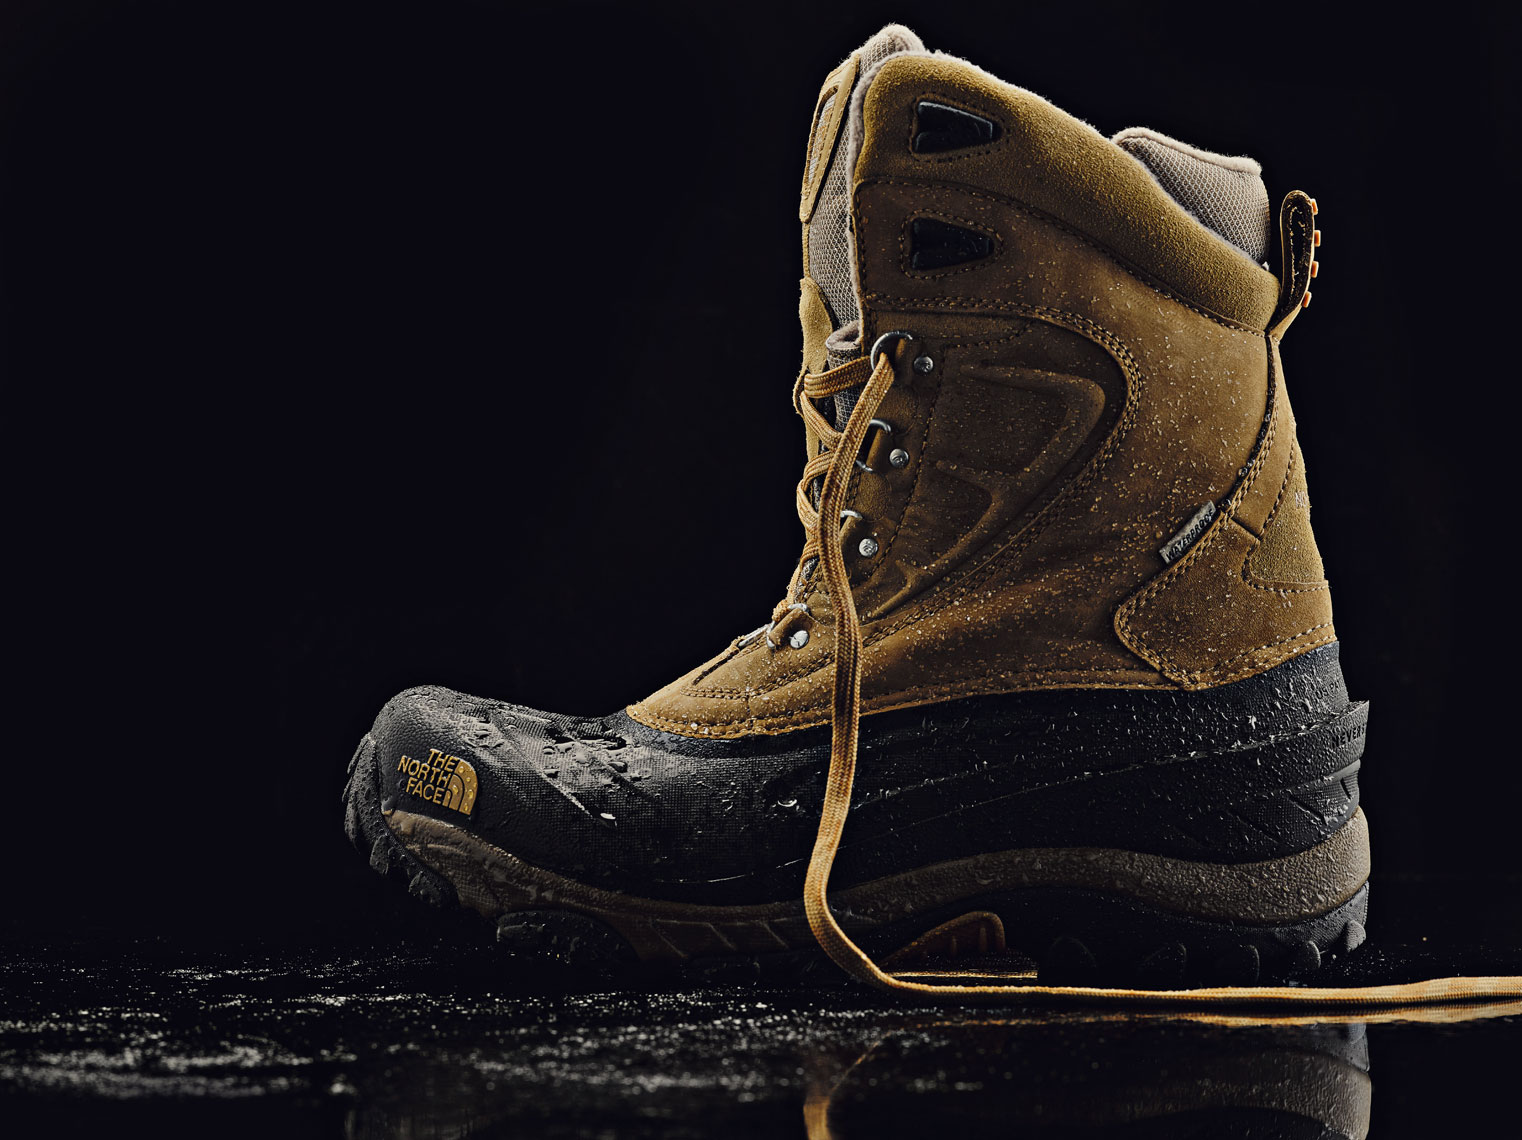 Northface boot